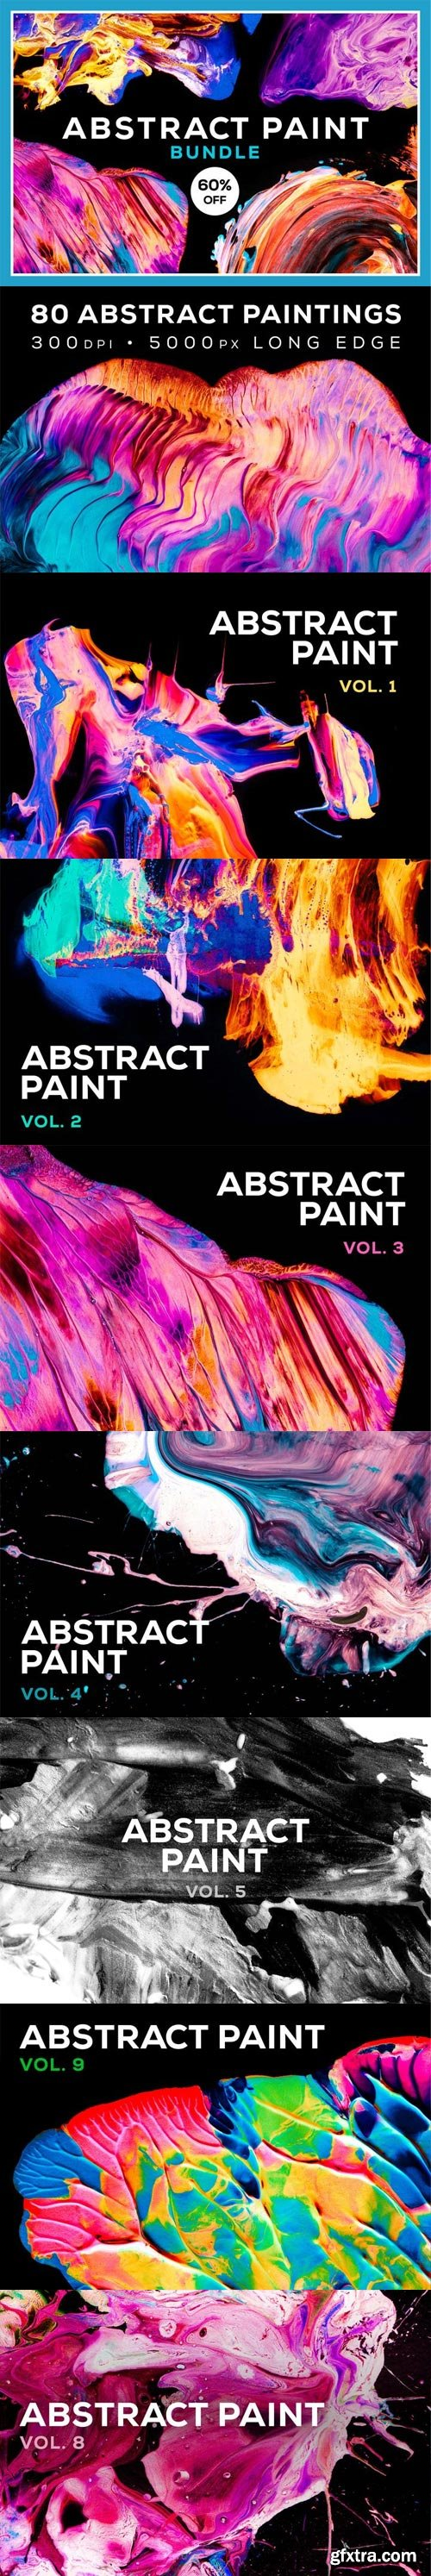 ChromaSupply - Abstract Paint Bundle